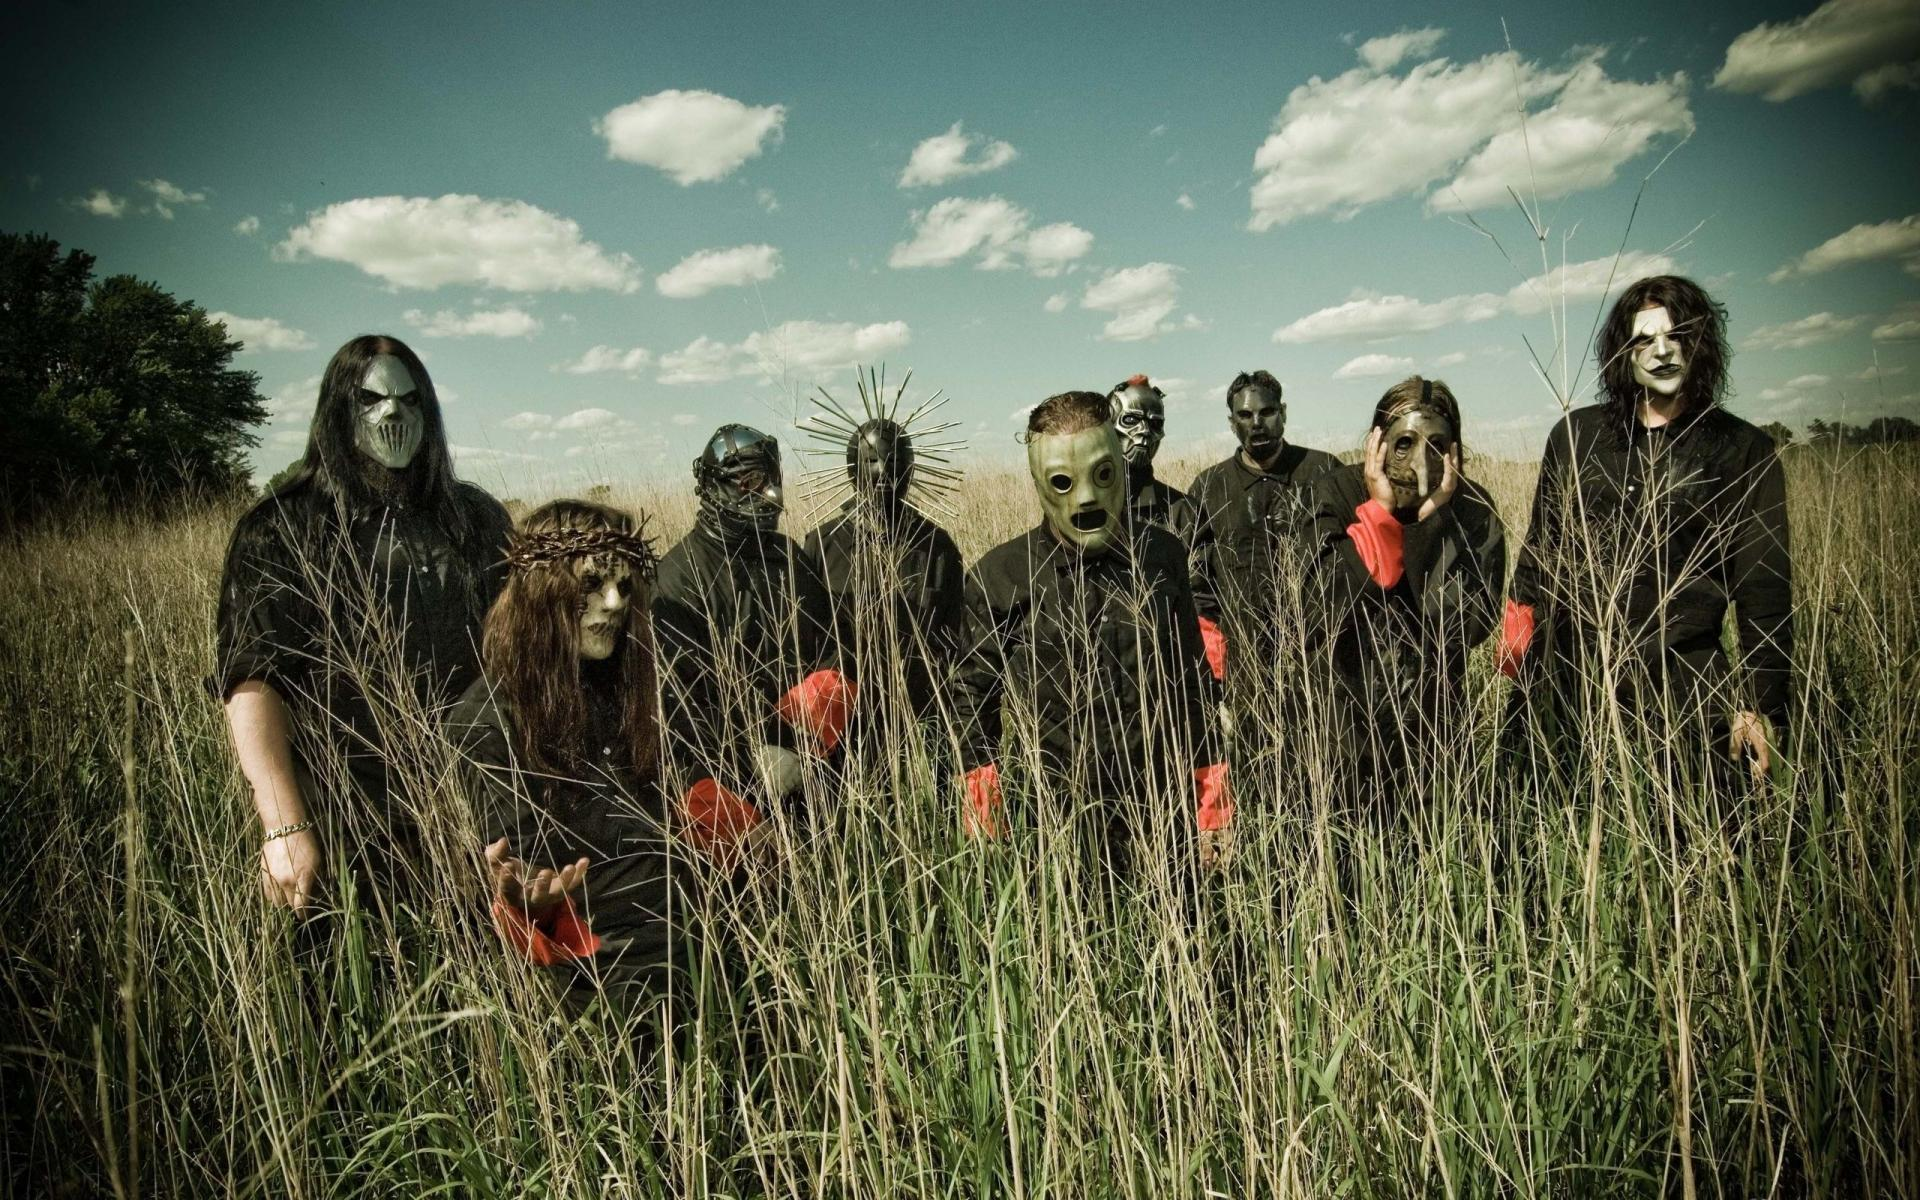 Slipknot Wallpapers HD paddy field